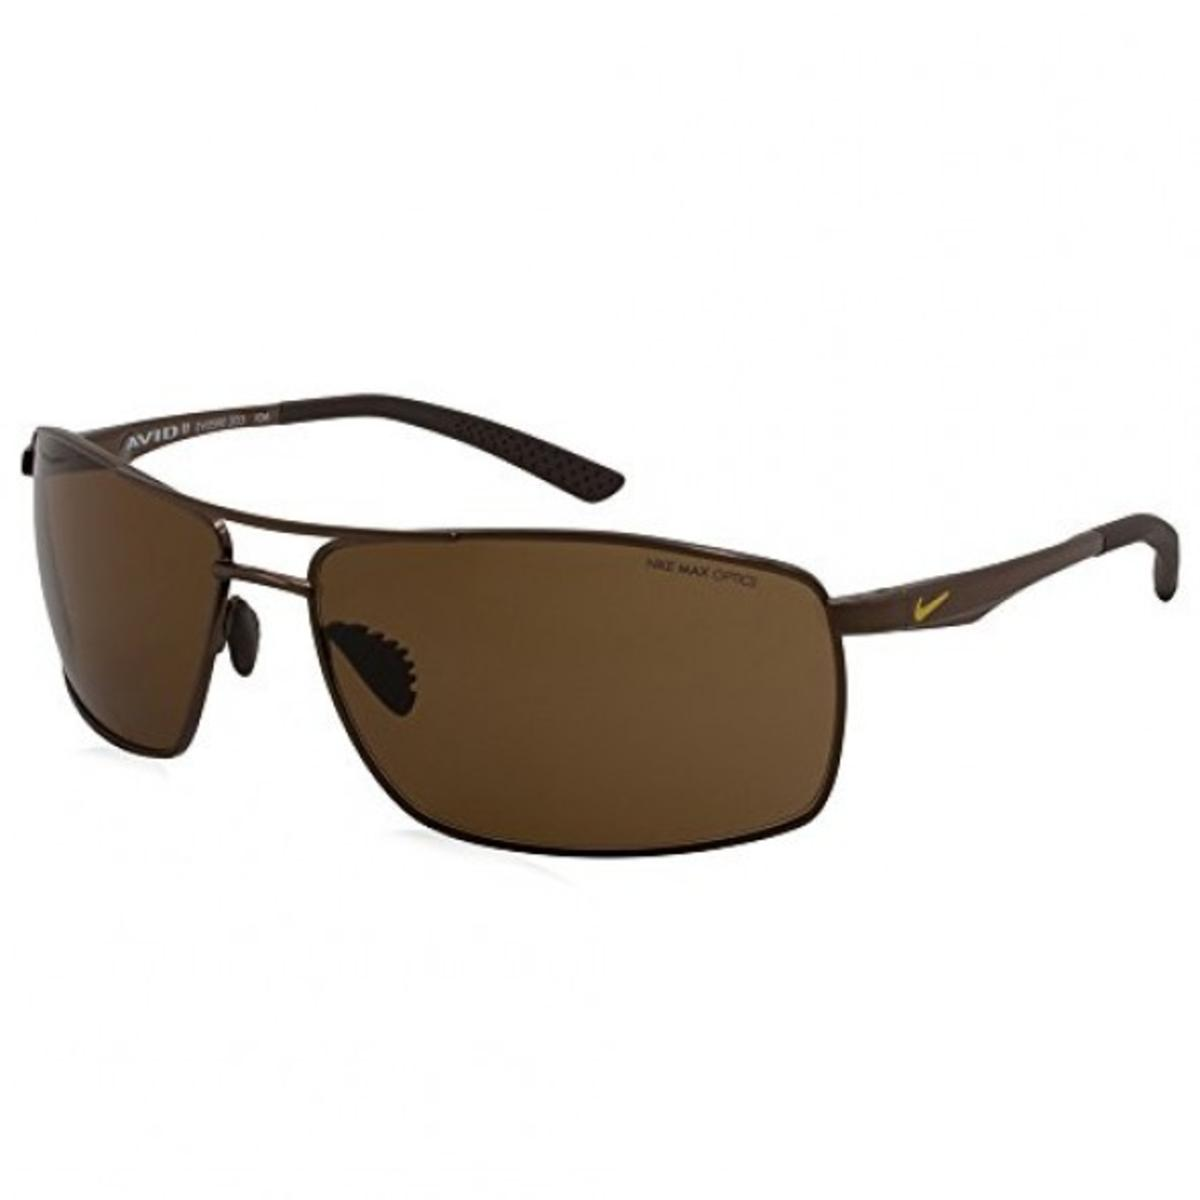 Nike Mens Avid II Max Optics UV Protection Aviator ...